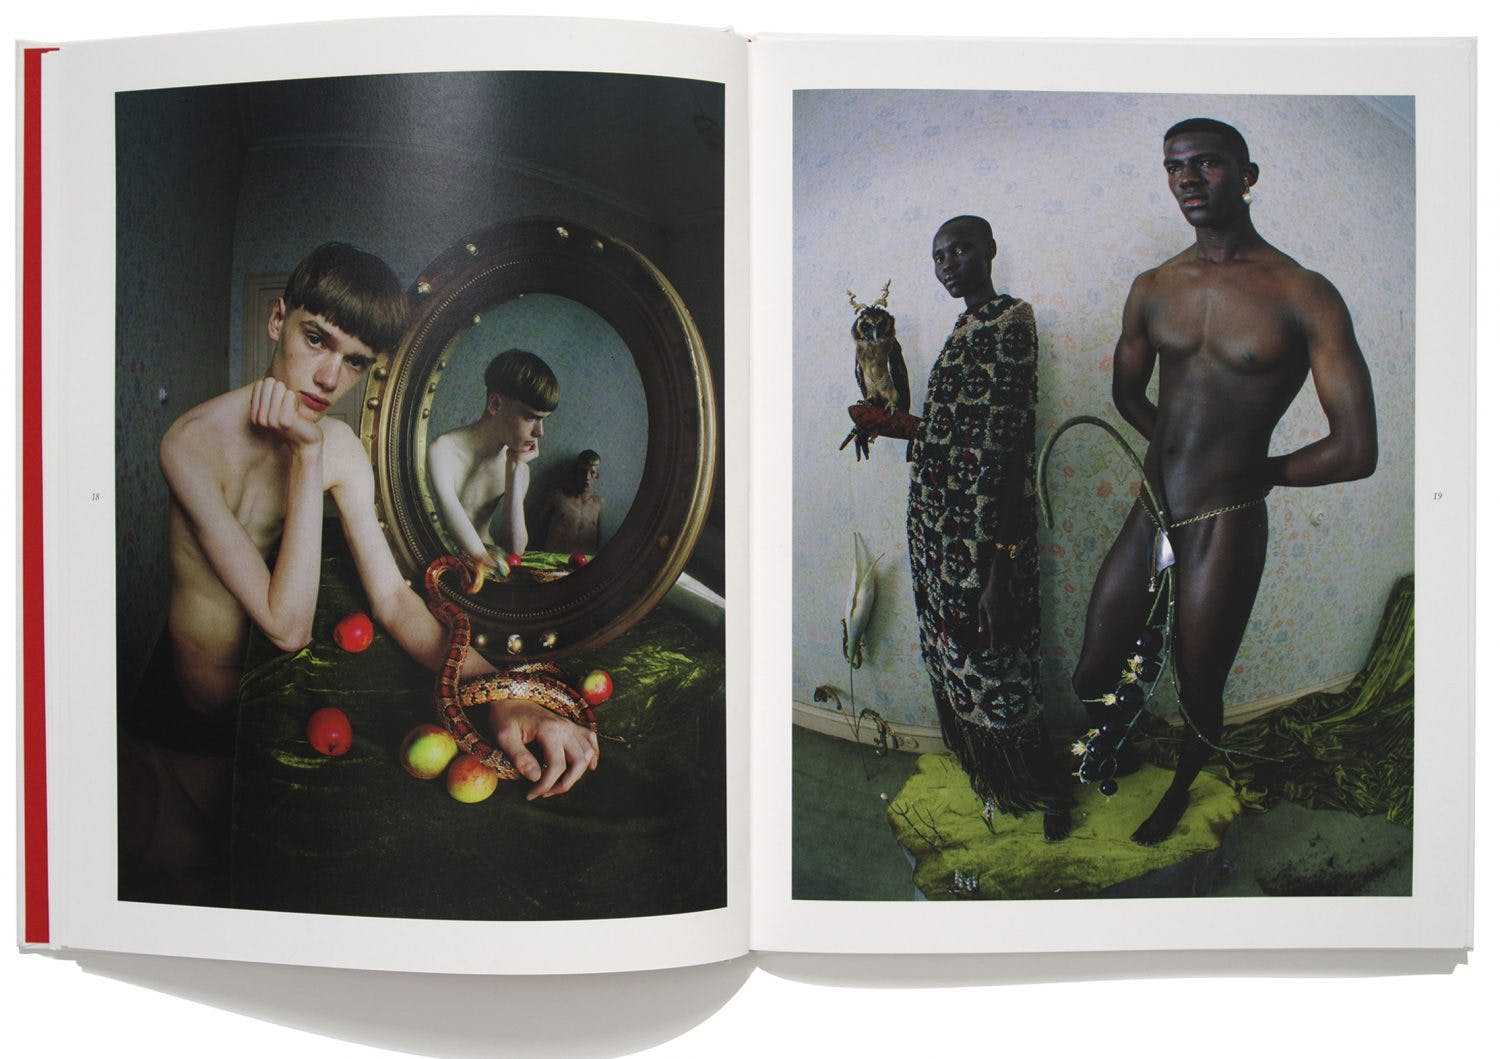 BOSCHIAN PHOTOGRAPHY BY TIM WALKER: THE GARDEN OF EARTHLY DELIGHTS